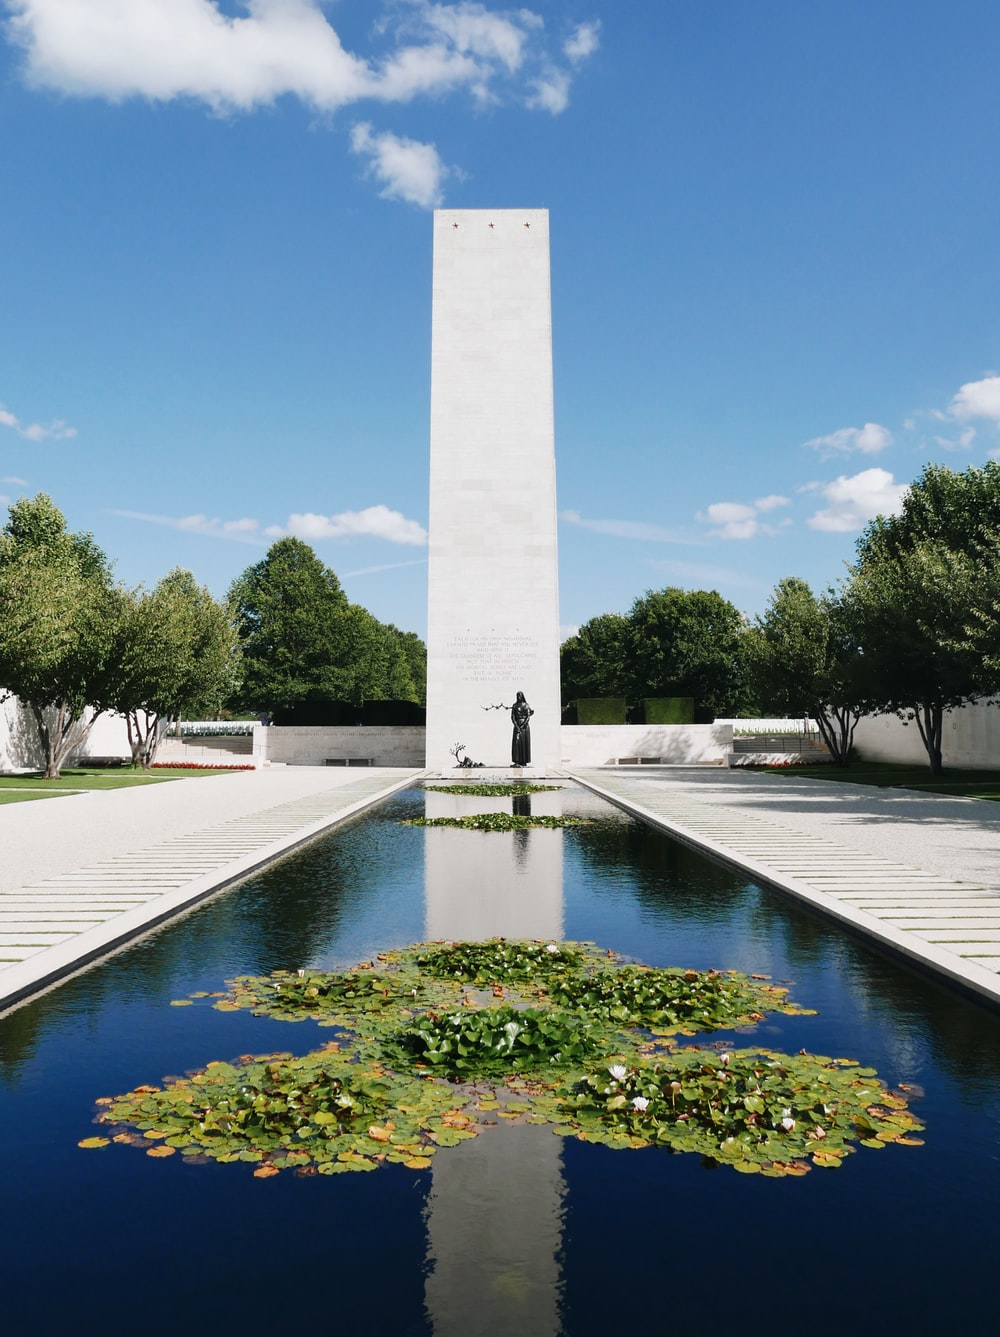 gray concrete monument near green trees under blue sky during daytime